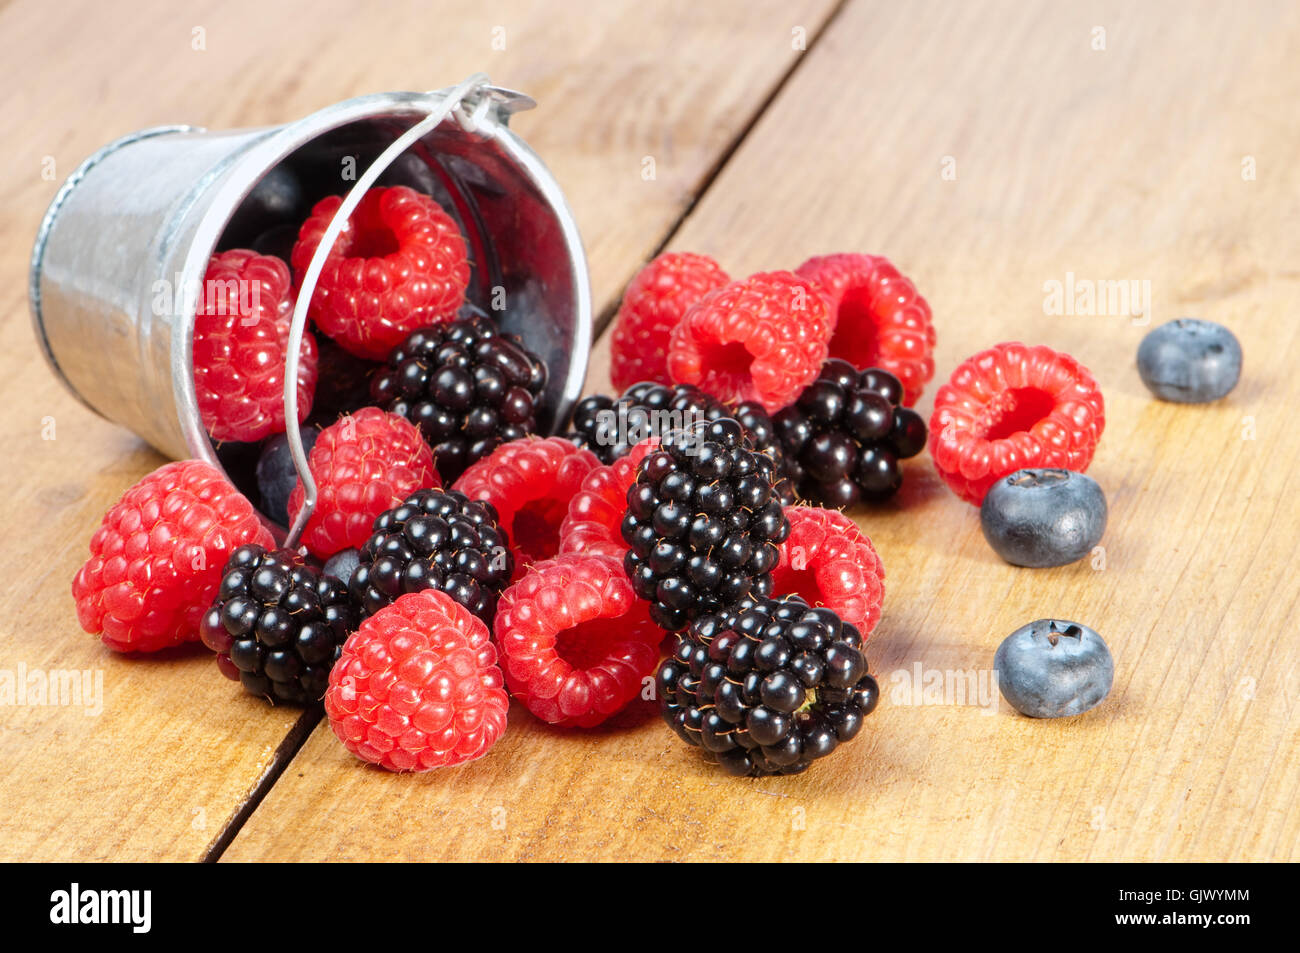 summer summerly berries - Stock Image